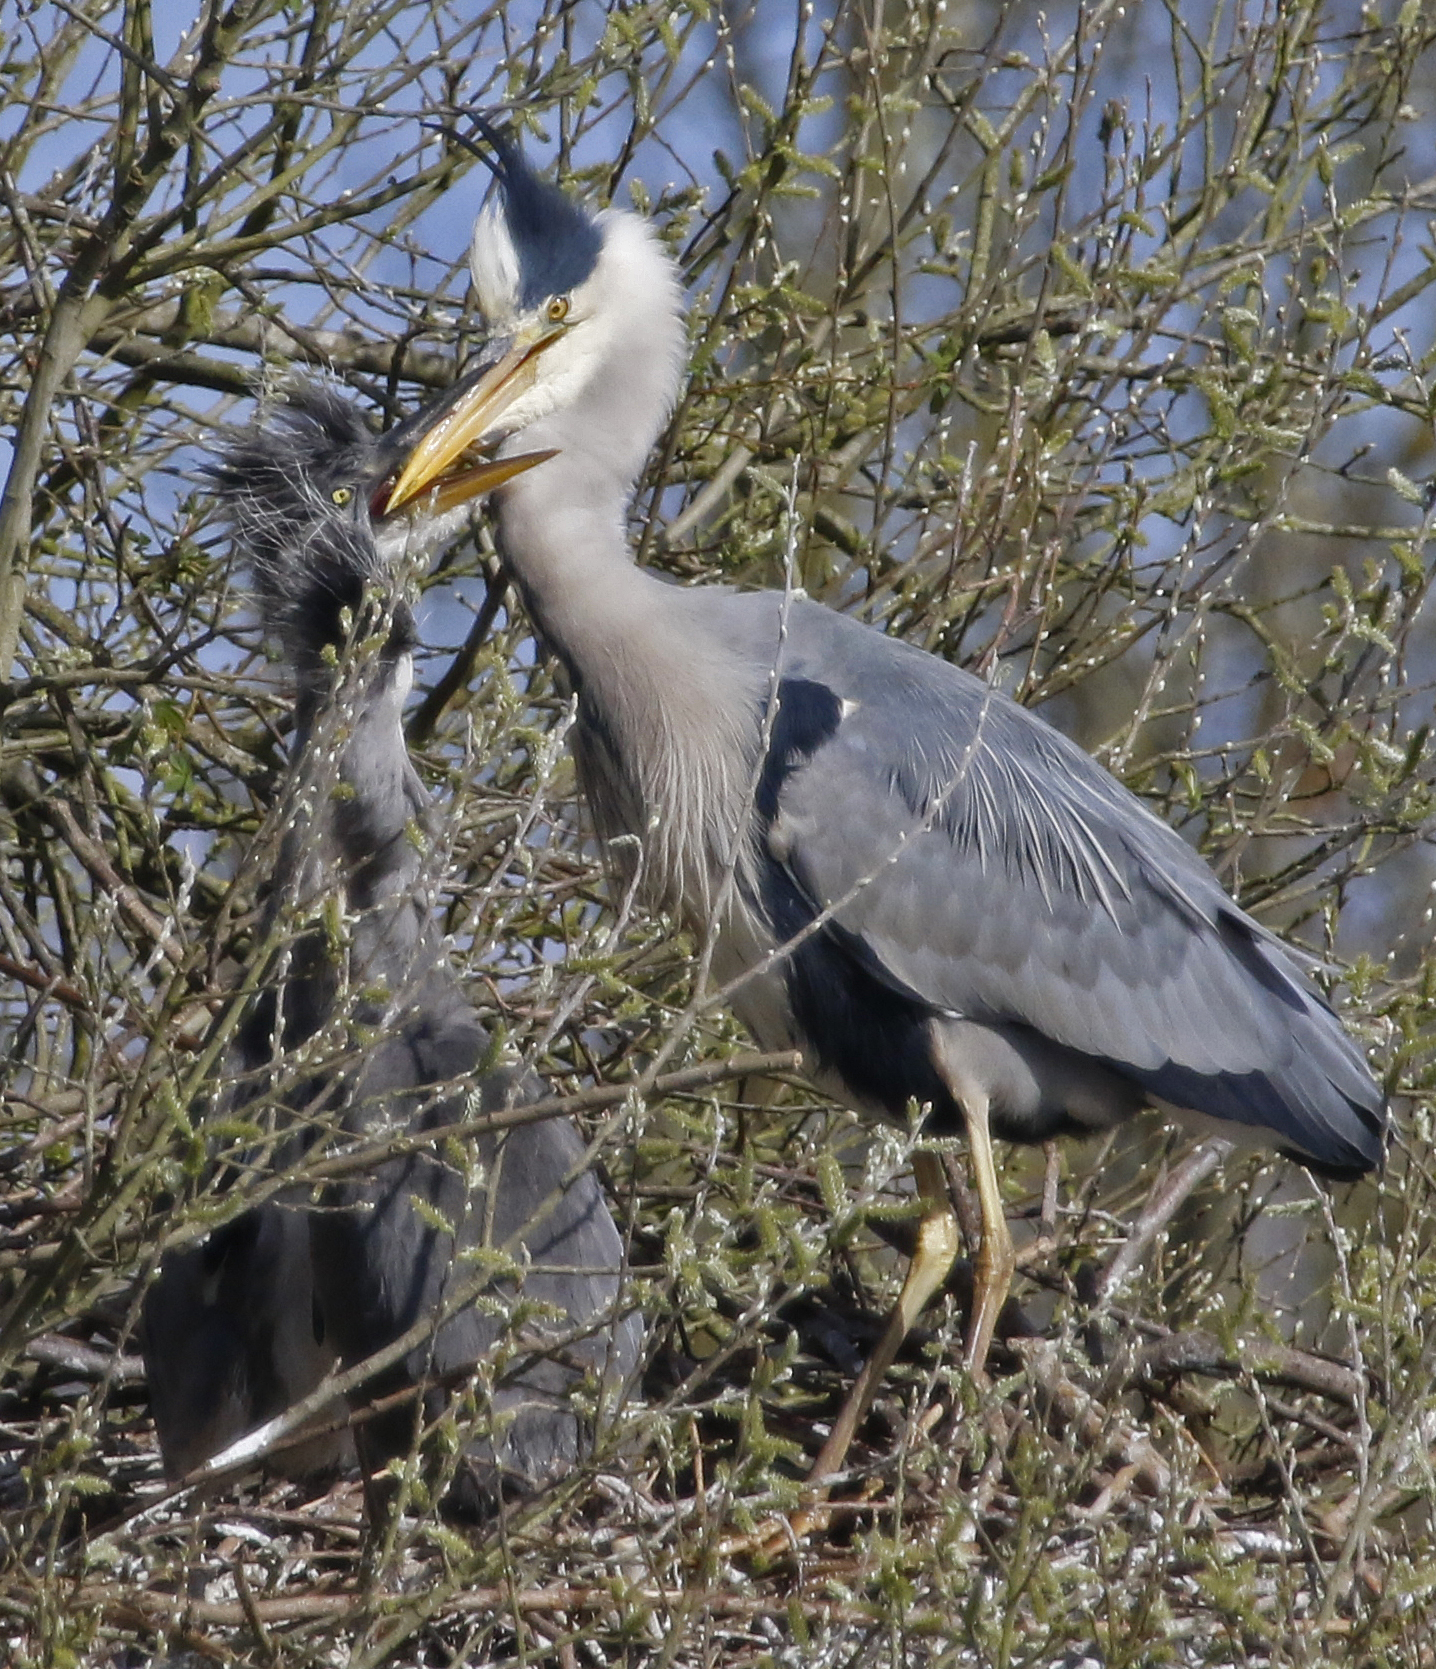 Heron feeding chick